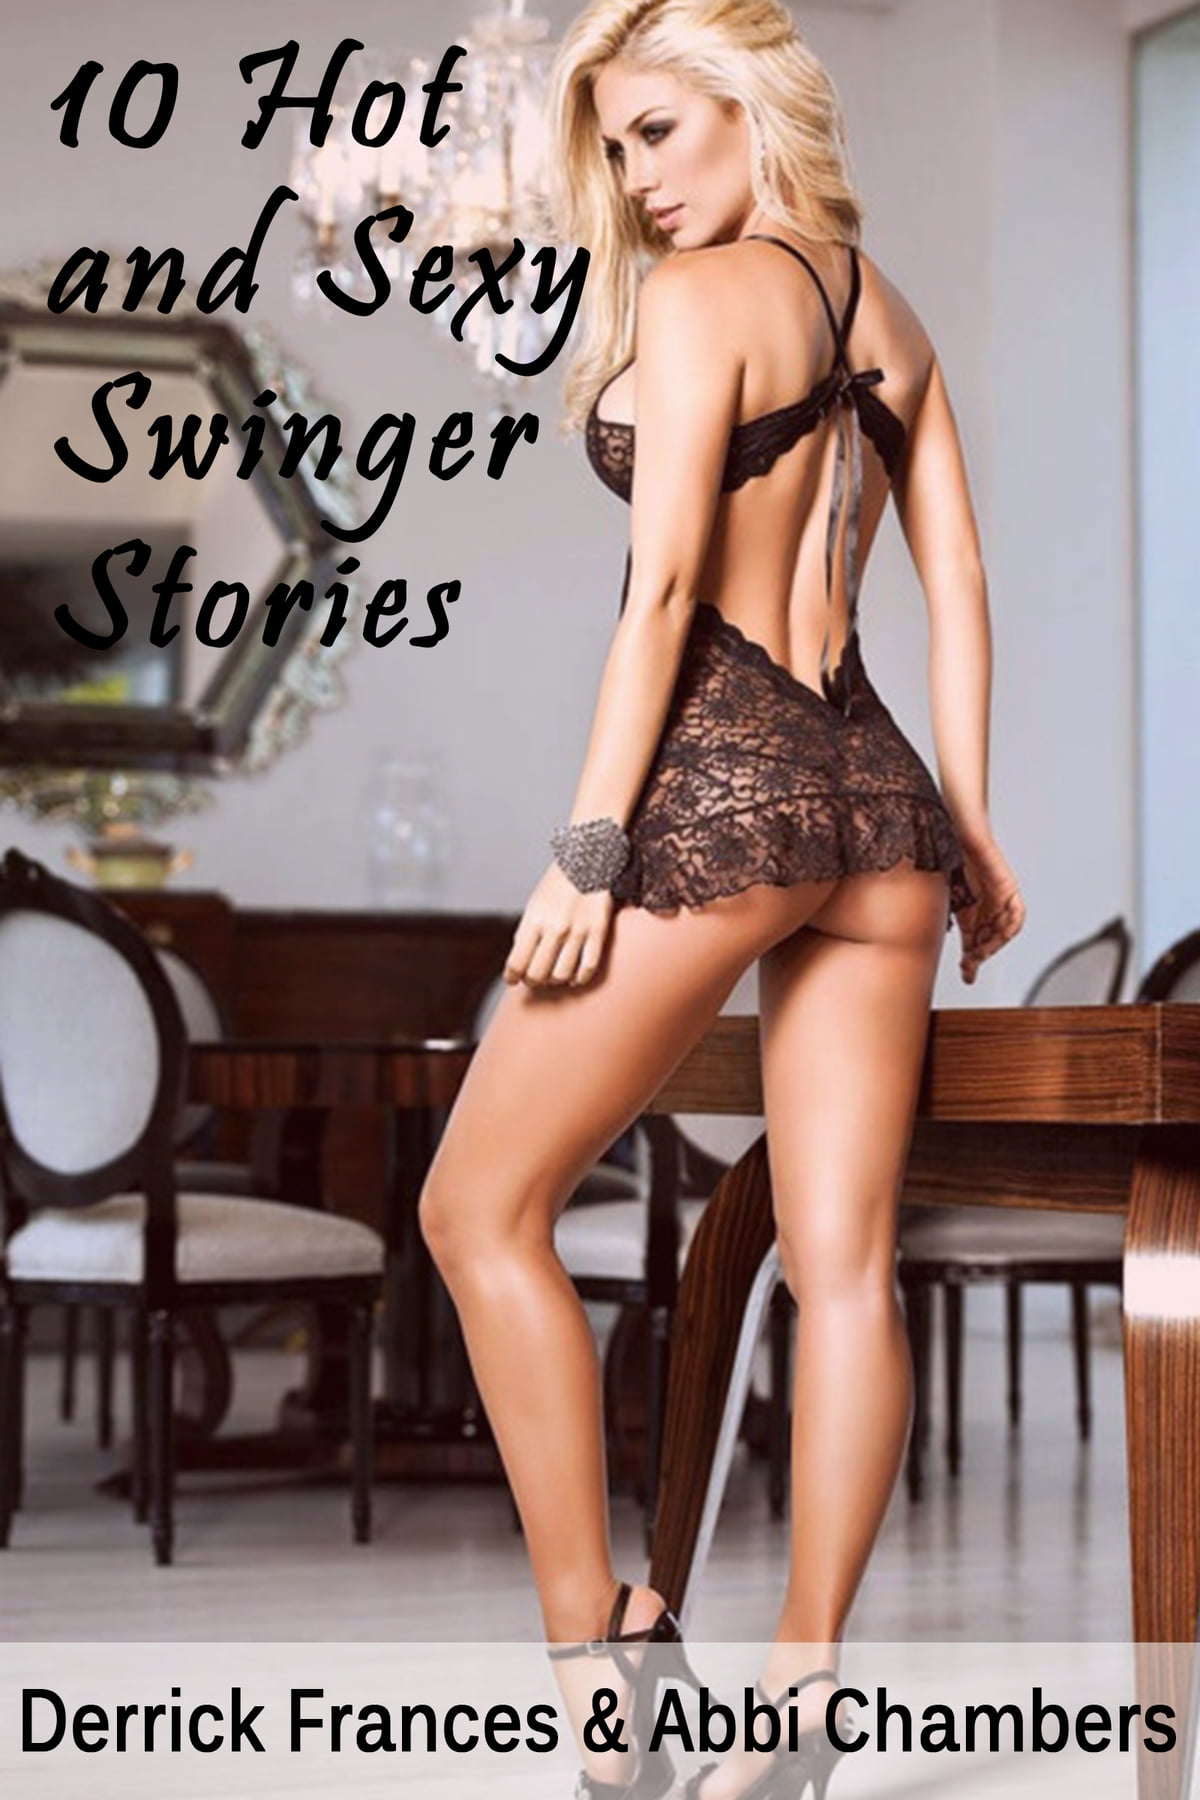 Tales swinger couples